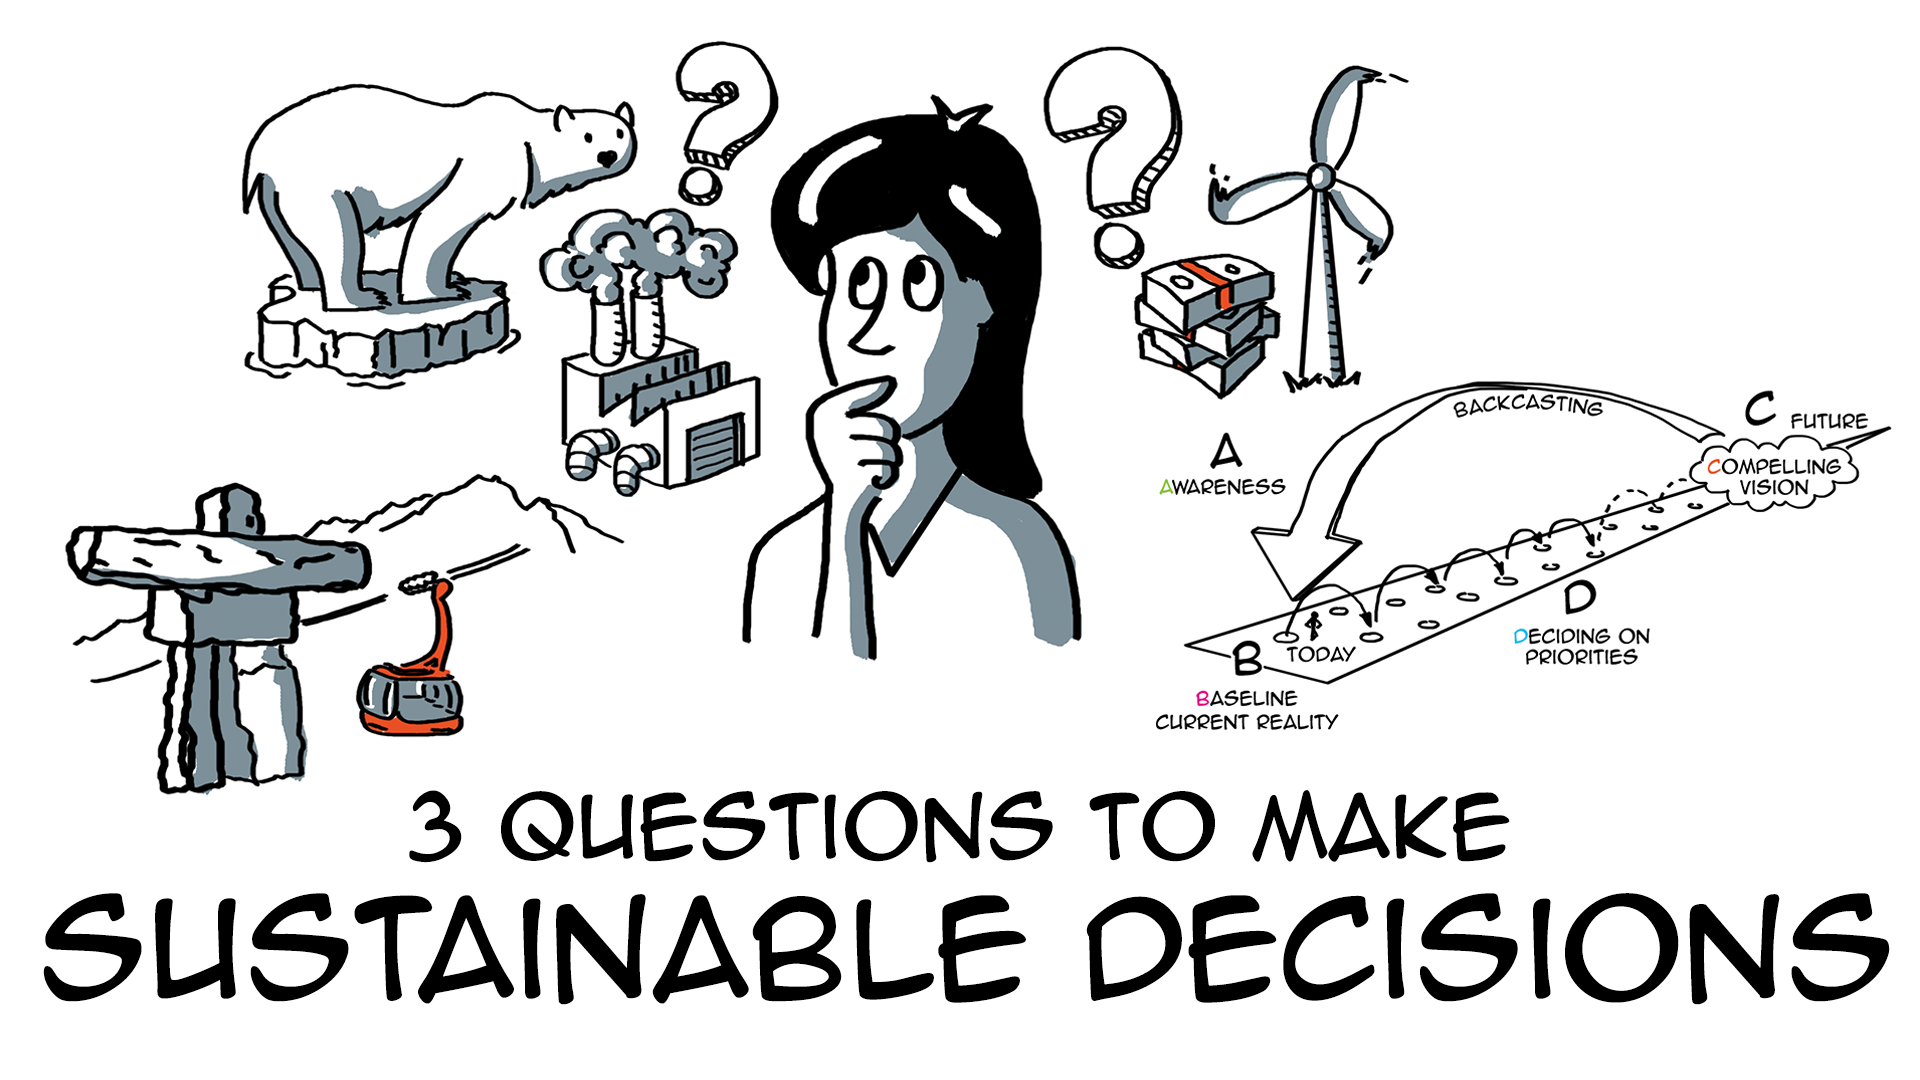 3 questions to make sustainable decisions